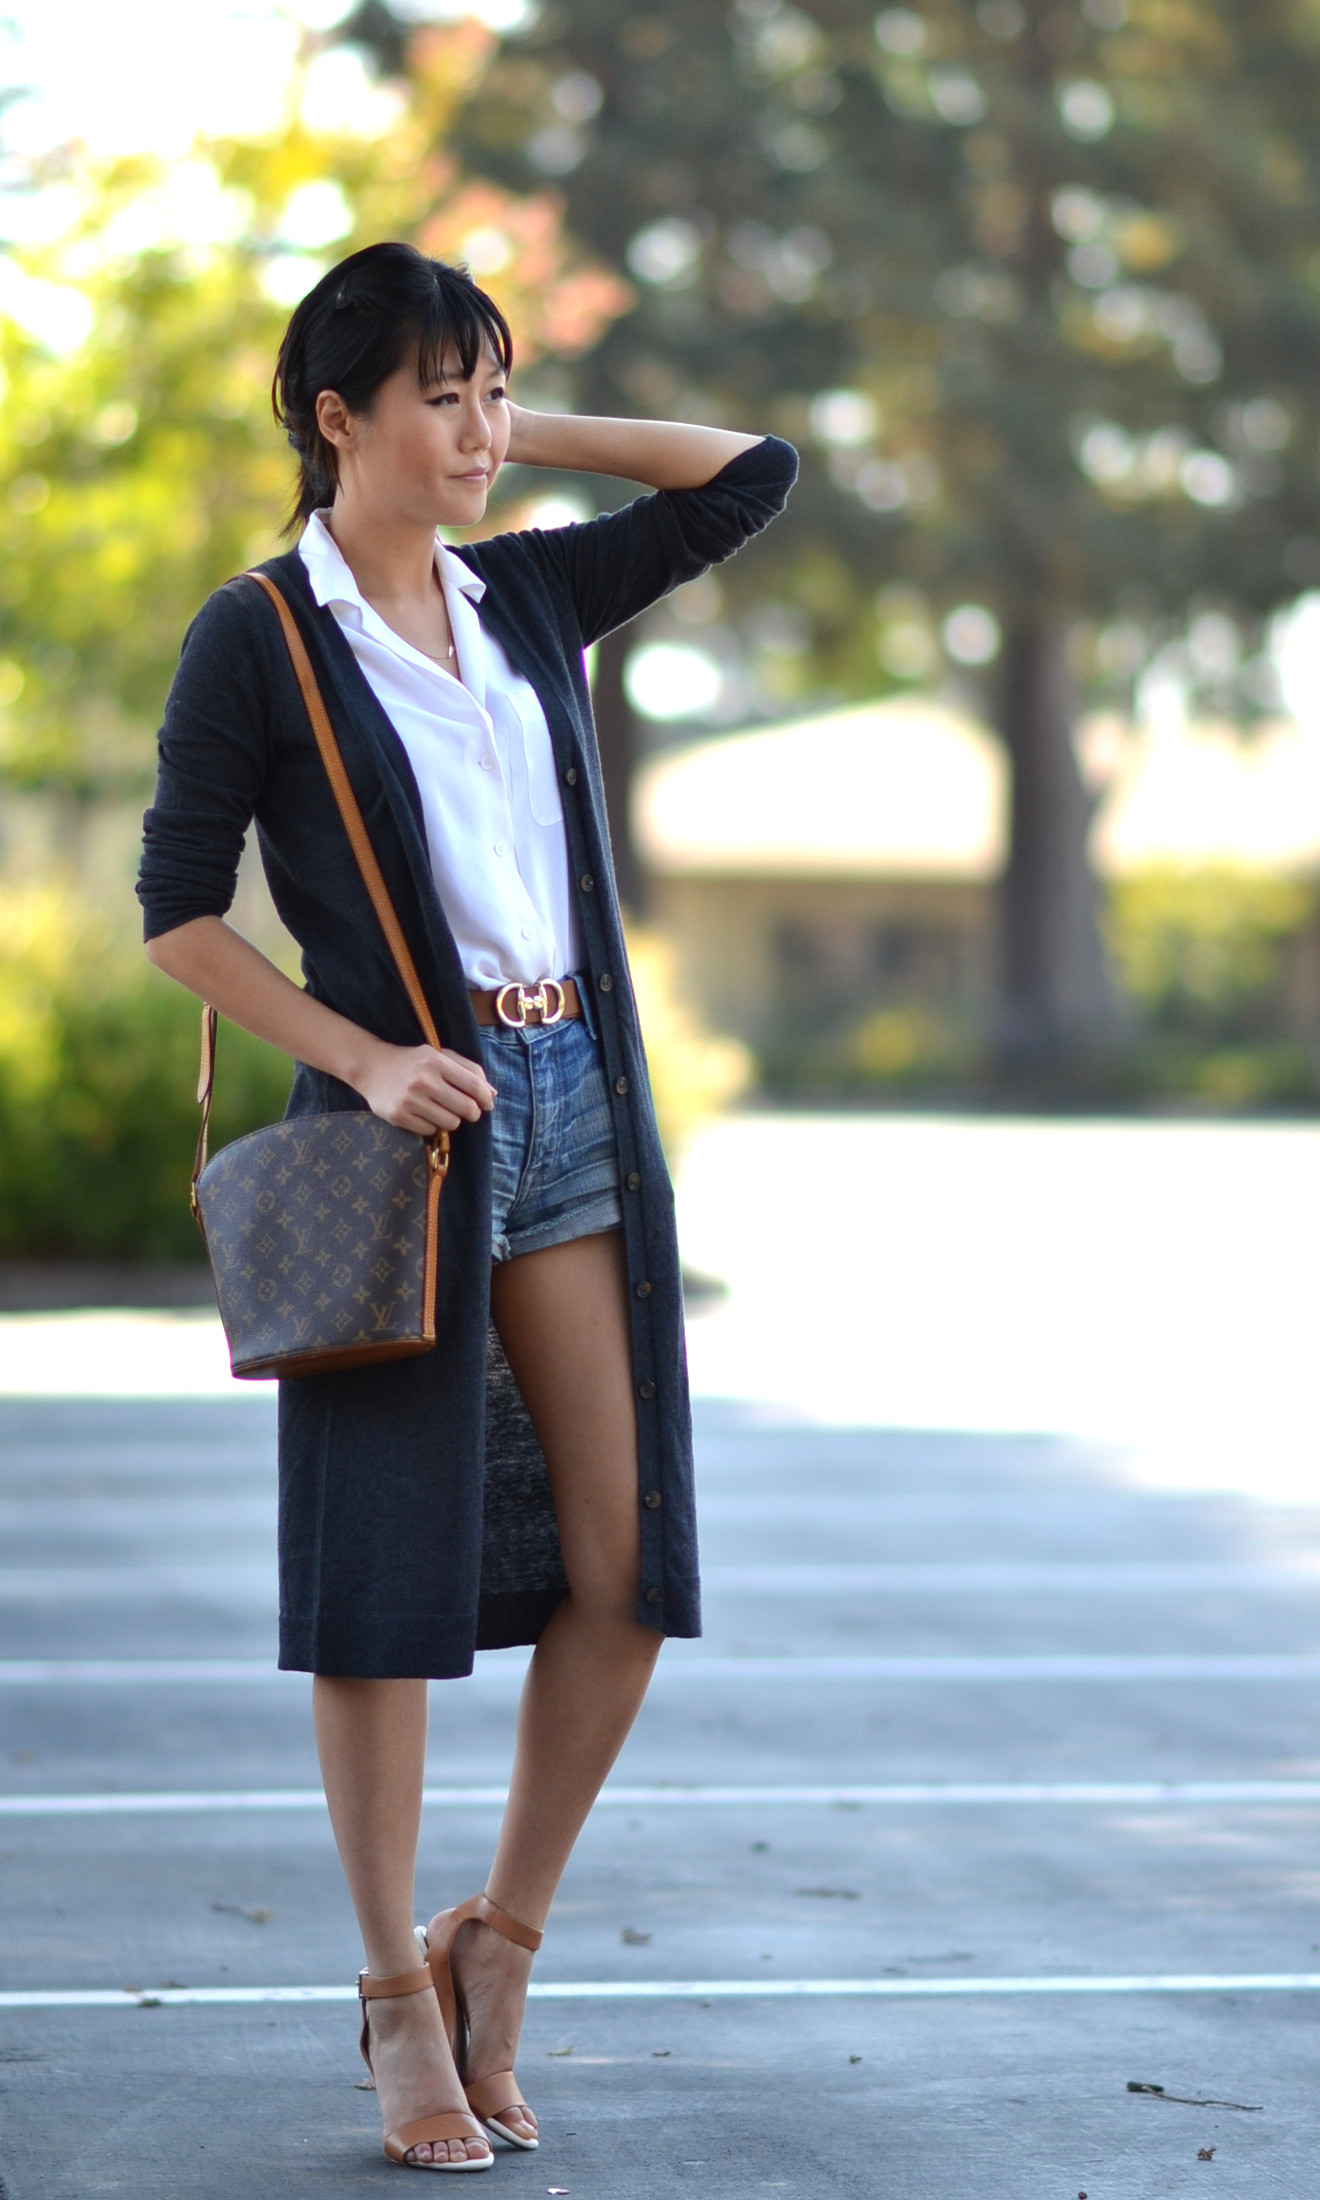 wearing Louis Vuitton druout modeling bag shoulder crossbody